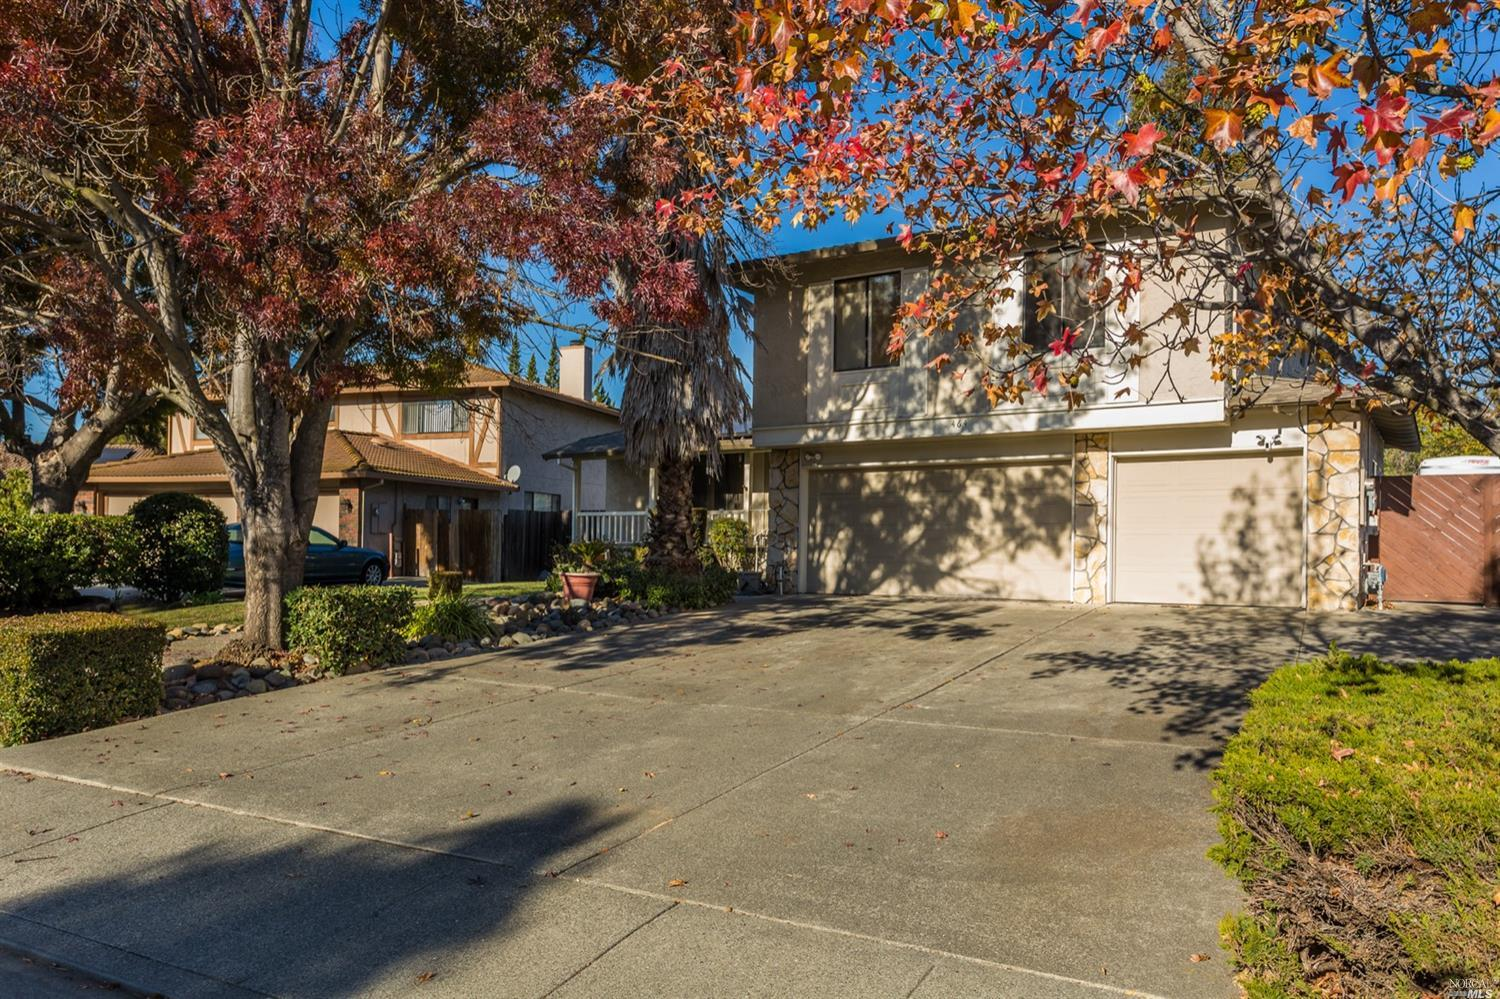 Welcome Home! You are invited to view 464 Americano Way, located just a few blocks away from one of